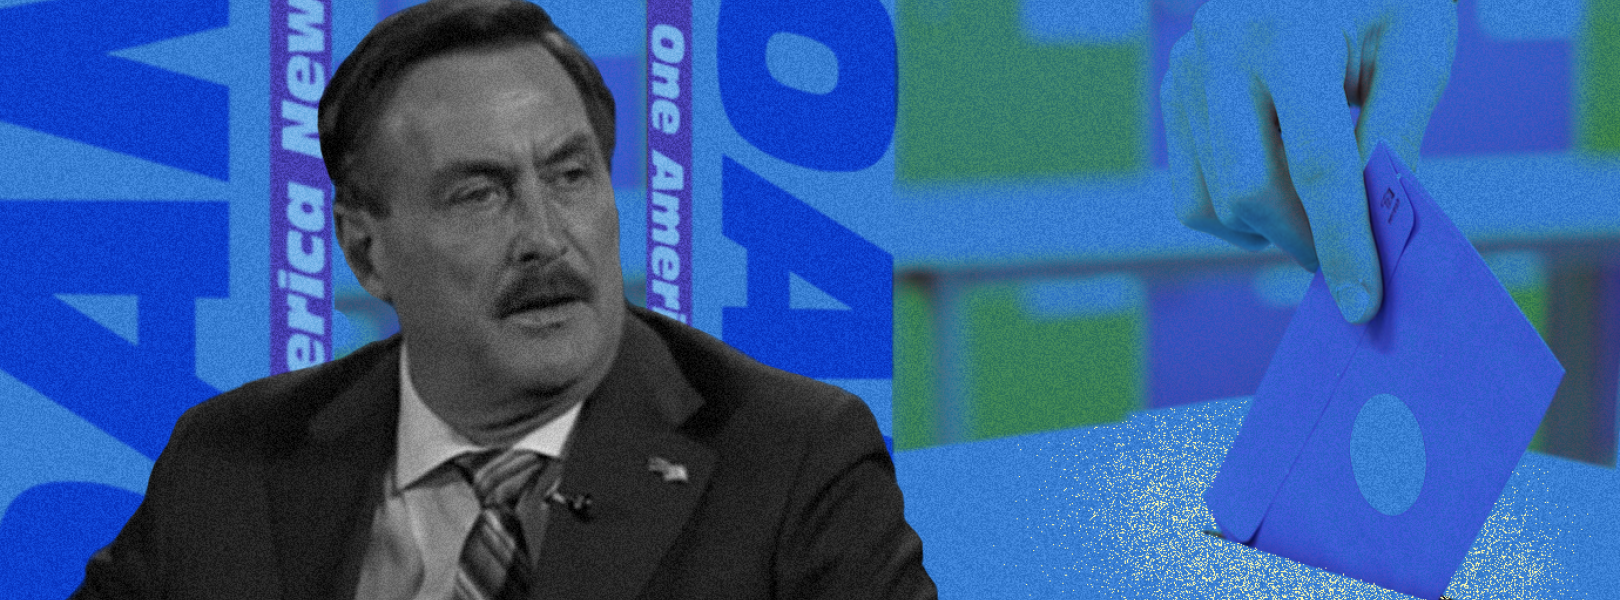 A grayed image of MyPillow CEO Mike Lindell with a backdrop of predominantly blue OAN logos, and, to the right, a ballot being inserted into a drop box.